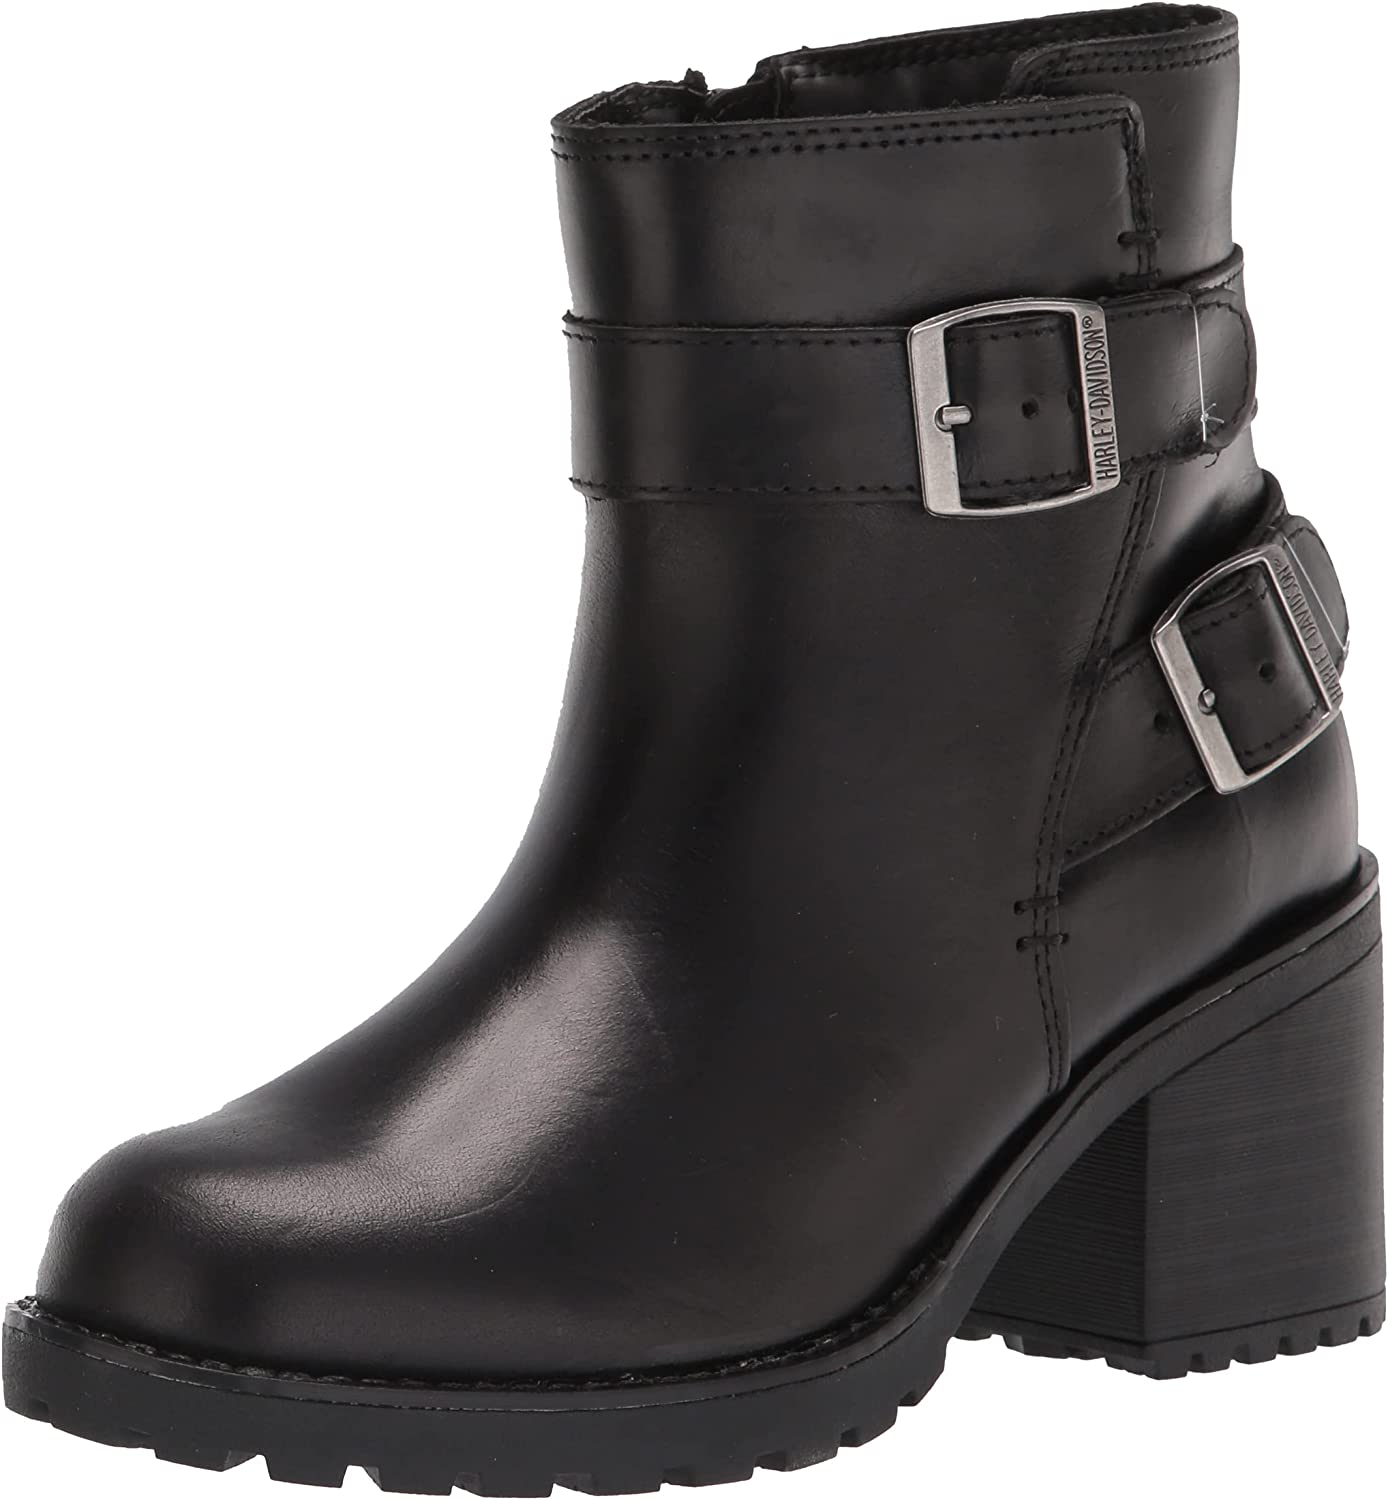 Harley-Davidson Cheap mail order shopping Women's Lalanne Double Ranking TOP7 Motorcycle Strap Boot